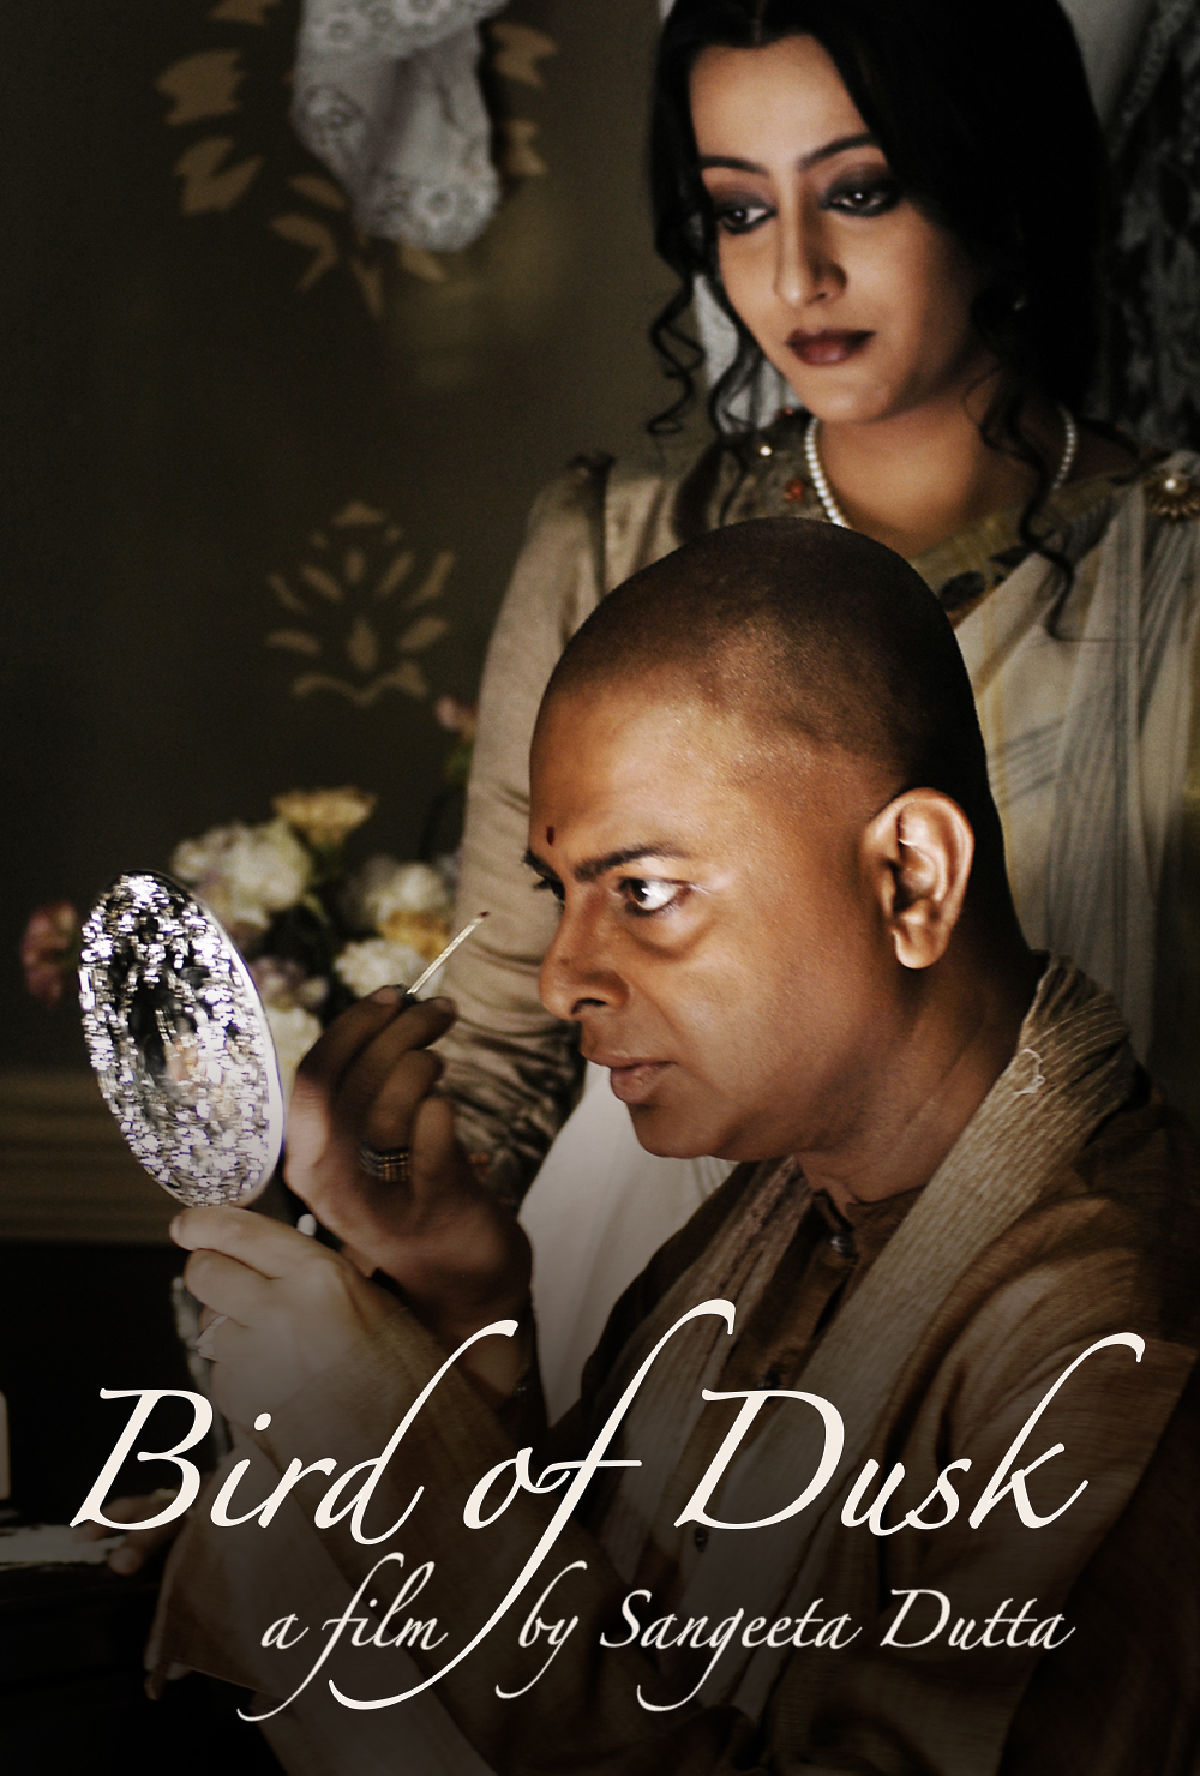 'Bird of Dusk' movie poster